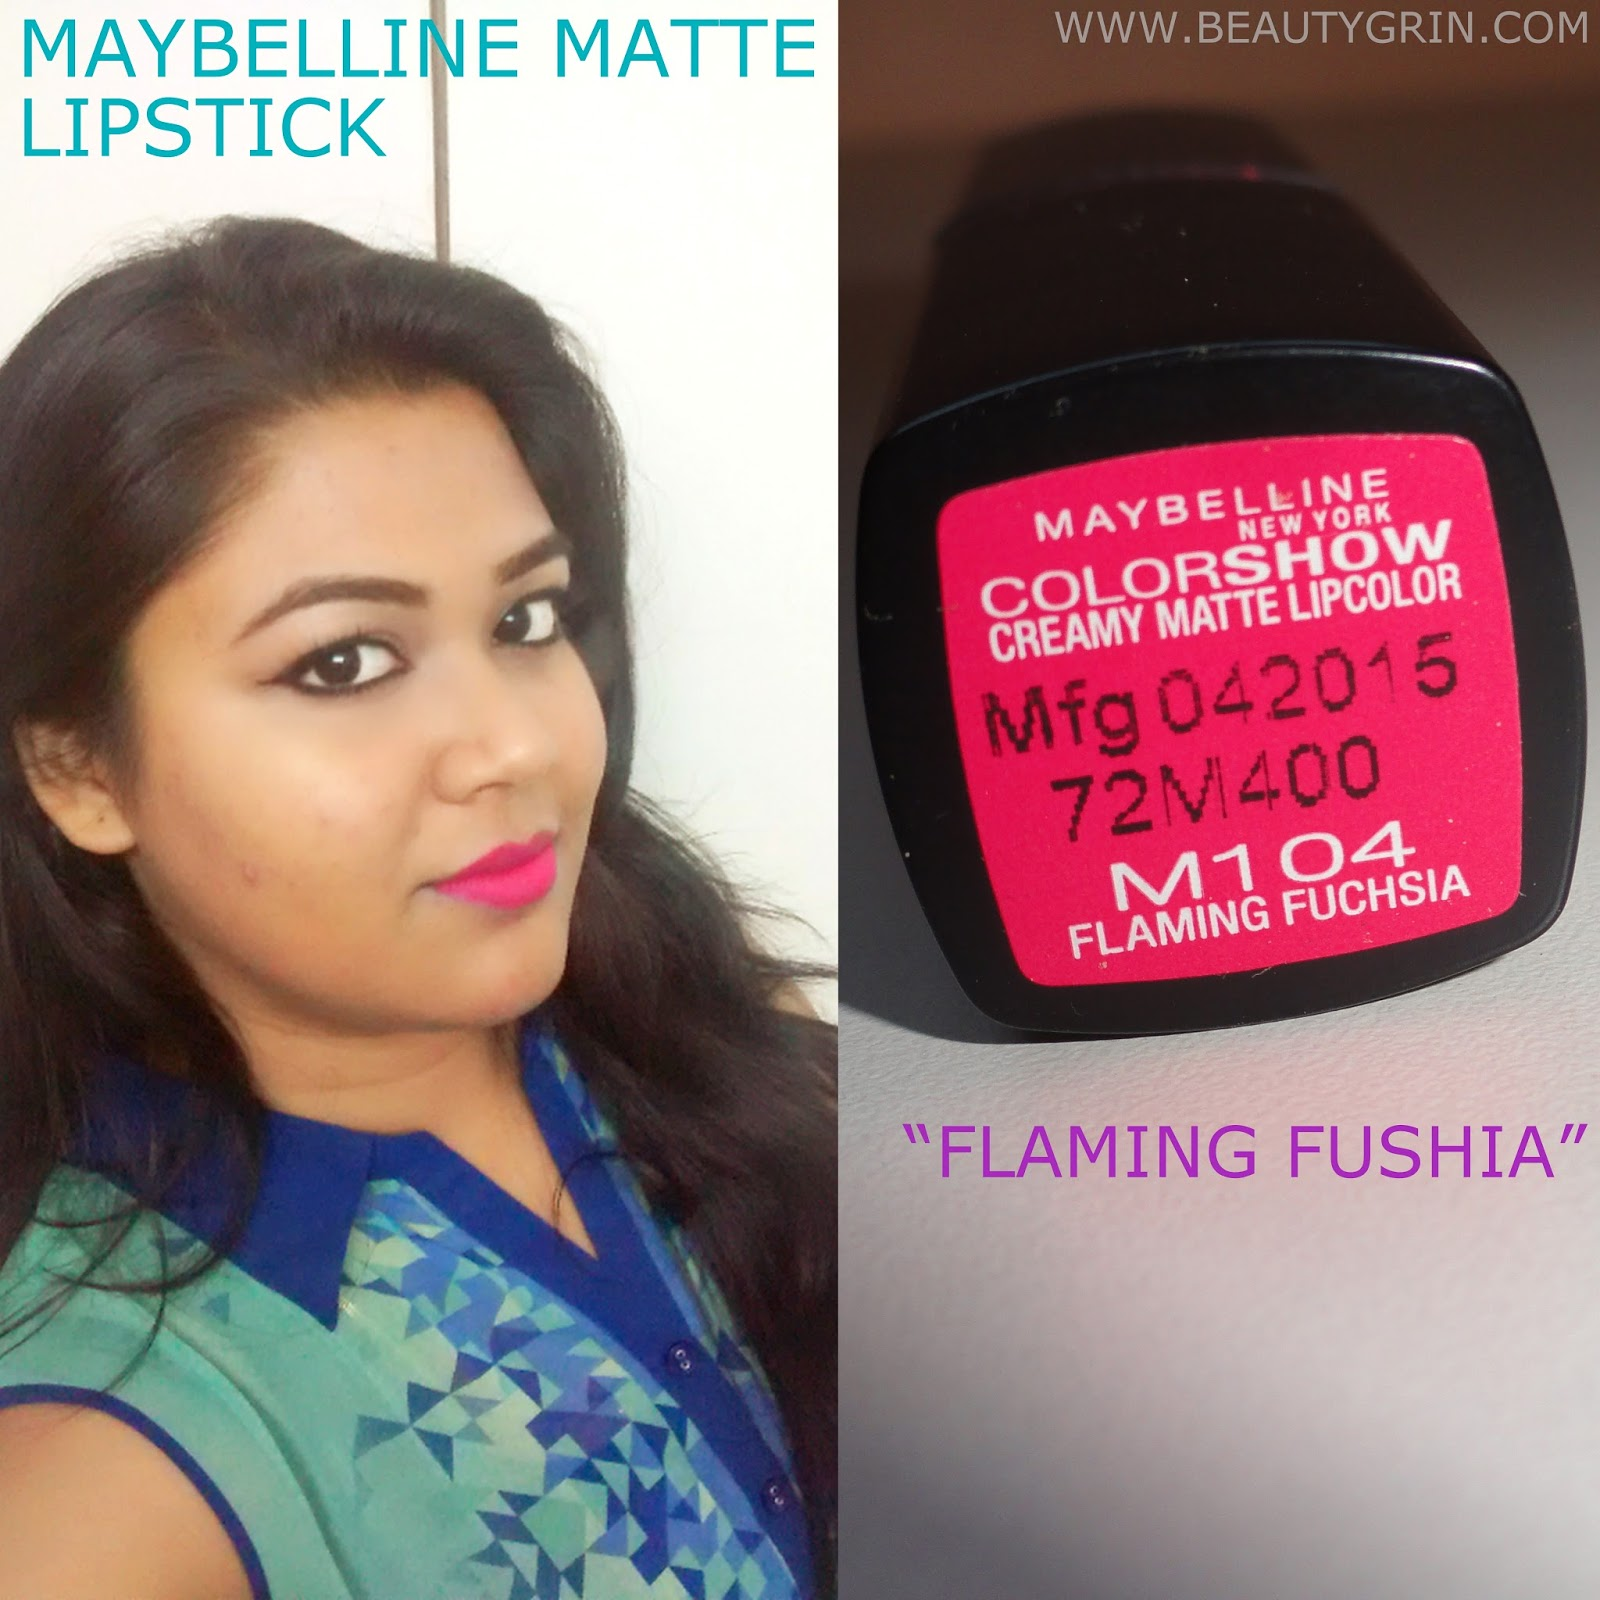 0ab41a7a9 Maybelline Color Show Matte Lipstick in Flaming Fushia M104  Review ...